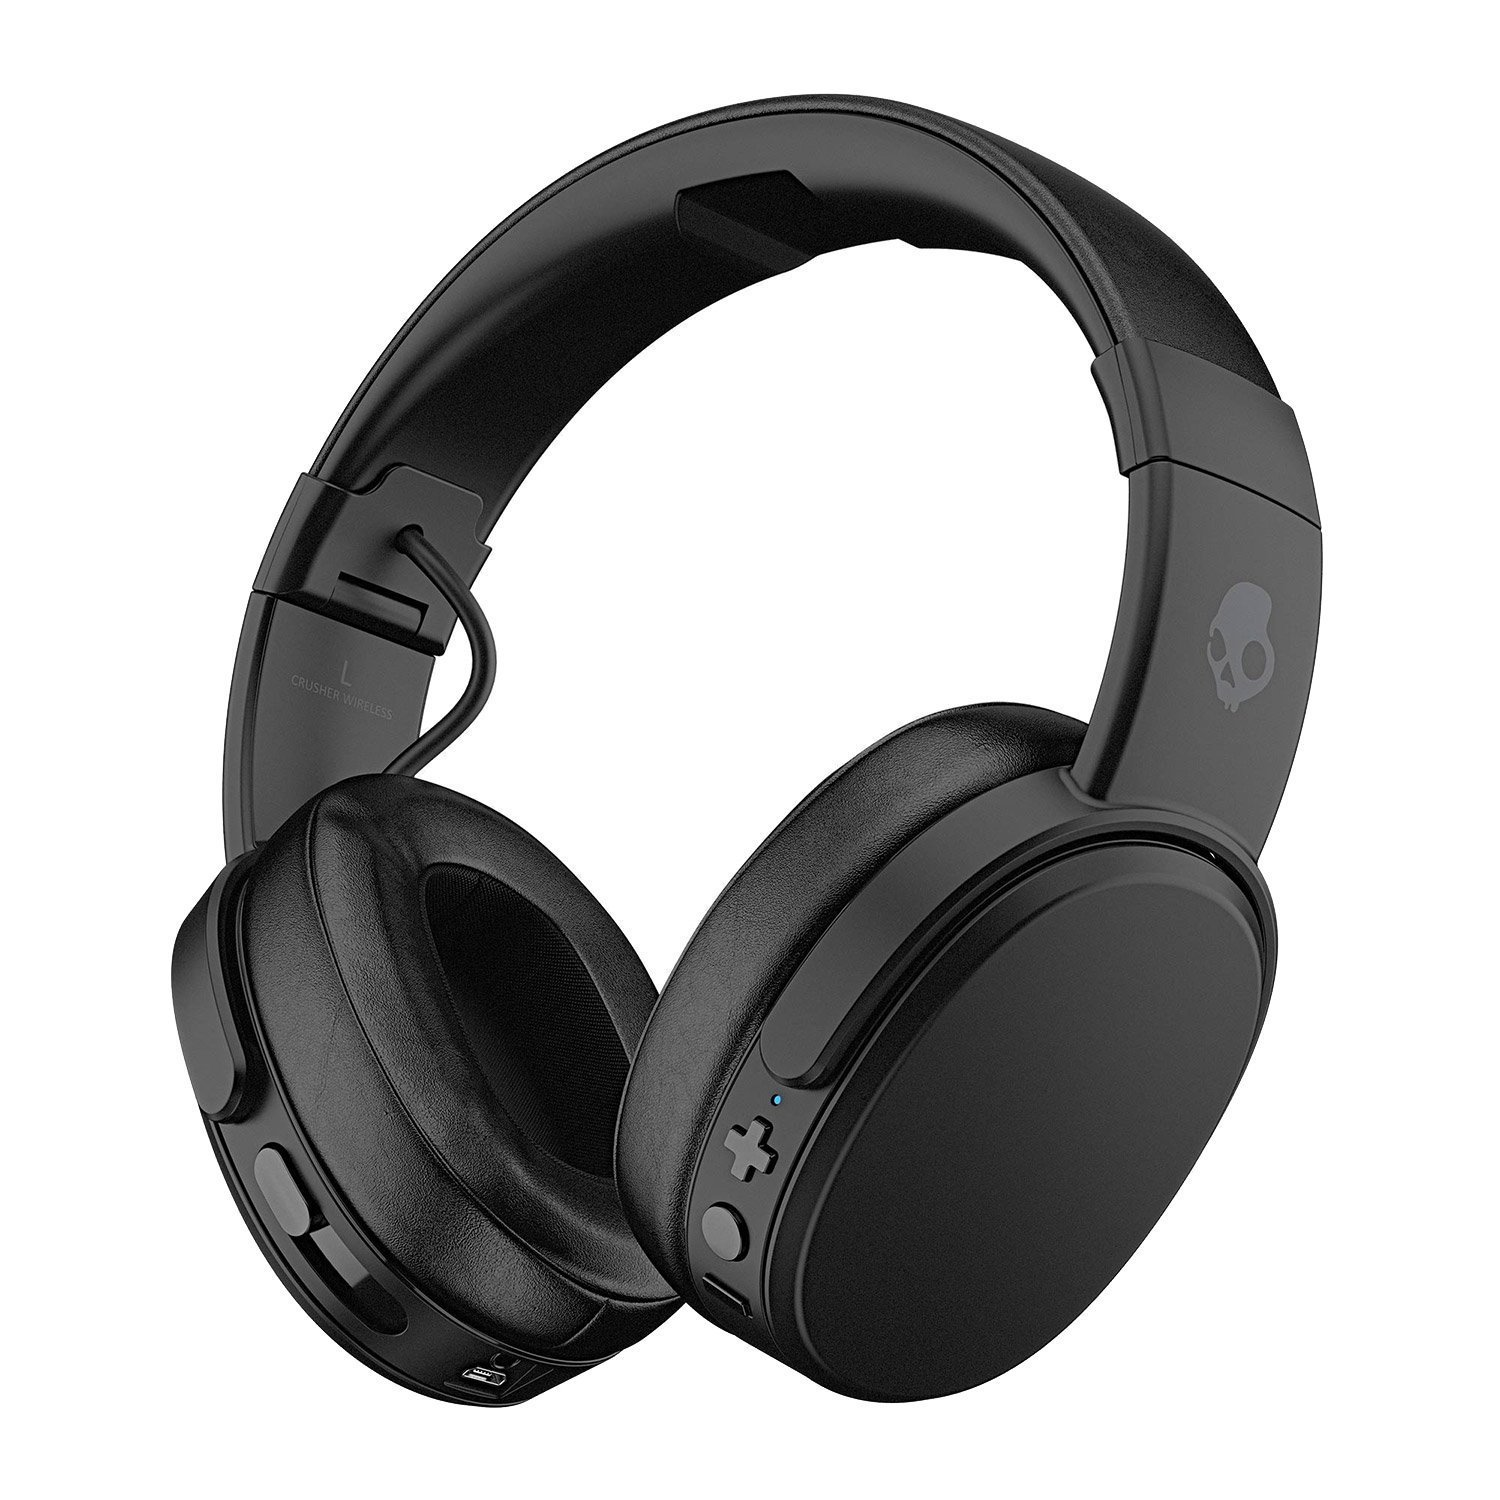 exceptional range of styles and colors choose best more photos Skullcandy Crusher Bluetooth Wireless Over-Ear Headphones with Microphone -  (Renewed) (Black)